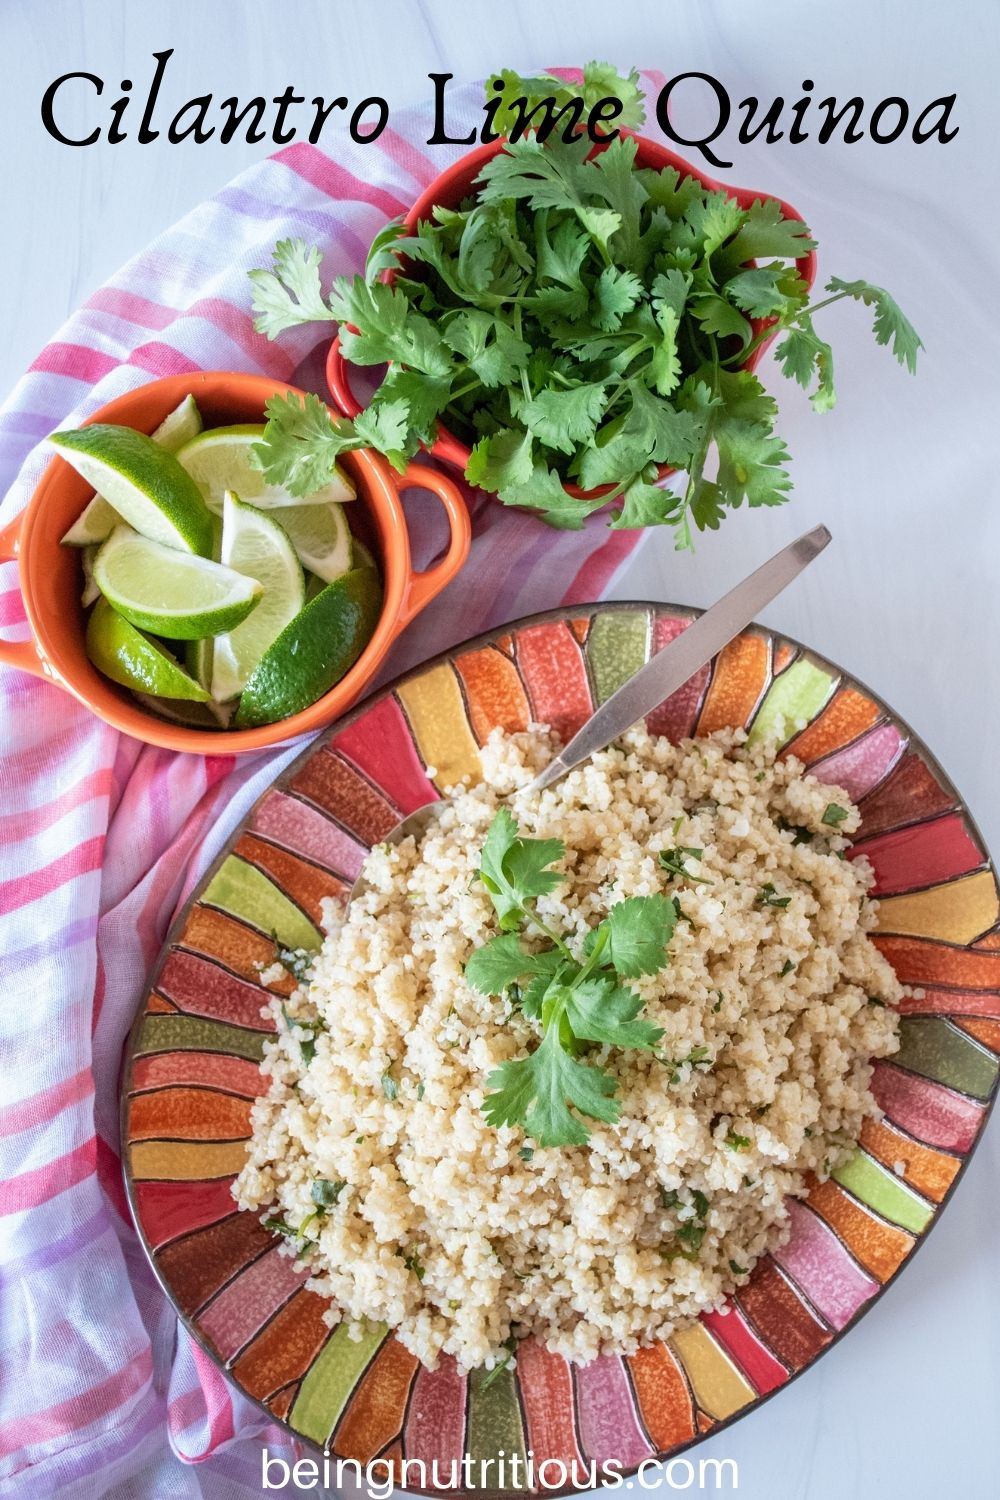 Overhead picture of quinoa on a plate, with small bowls of limes slices and fresh cilantro above. Text overlay: Cilantro Lime Quinoa